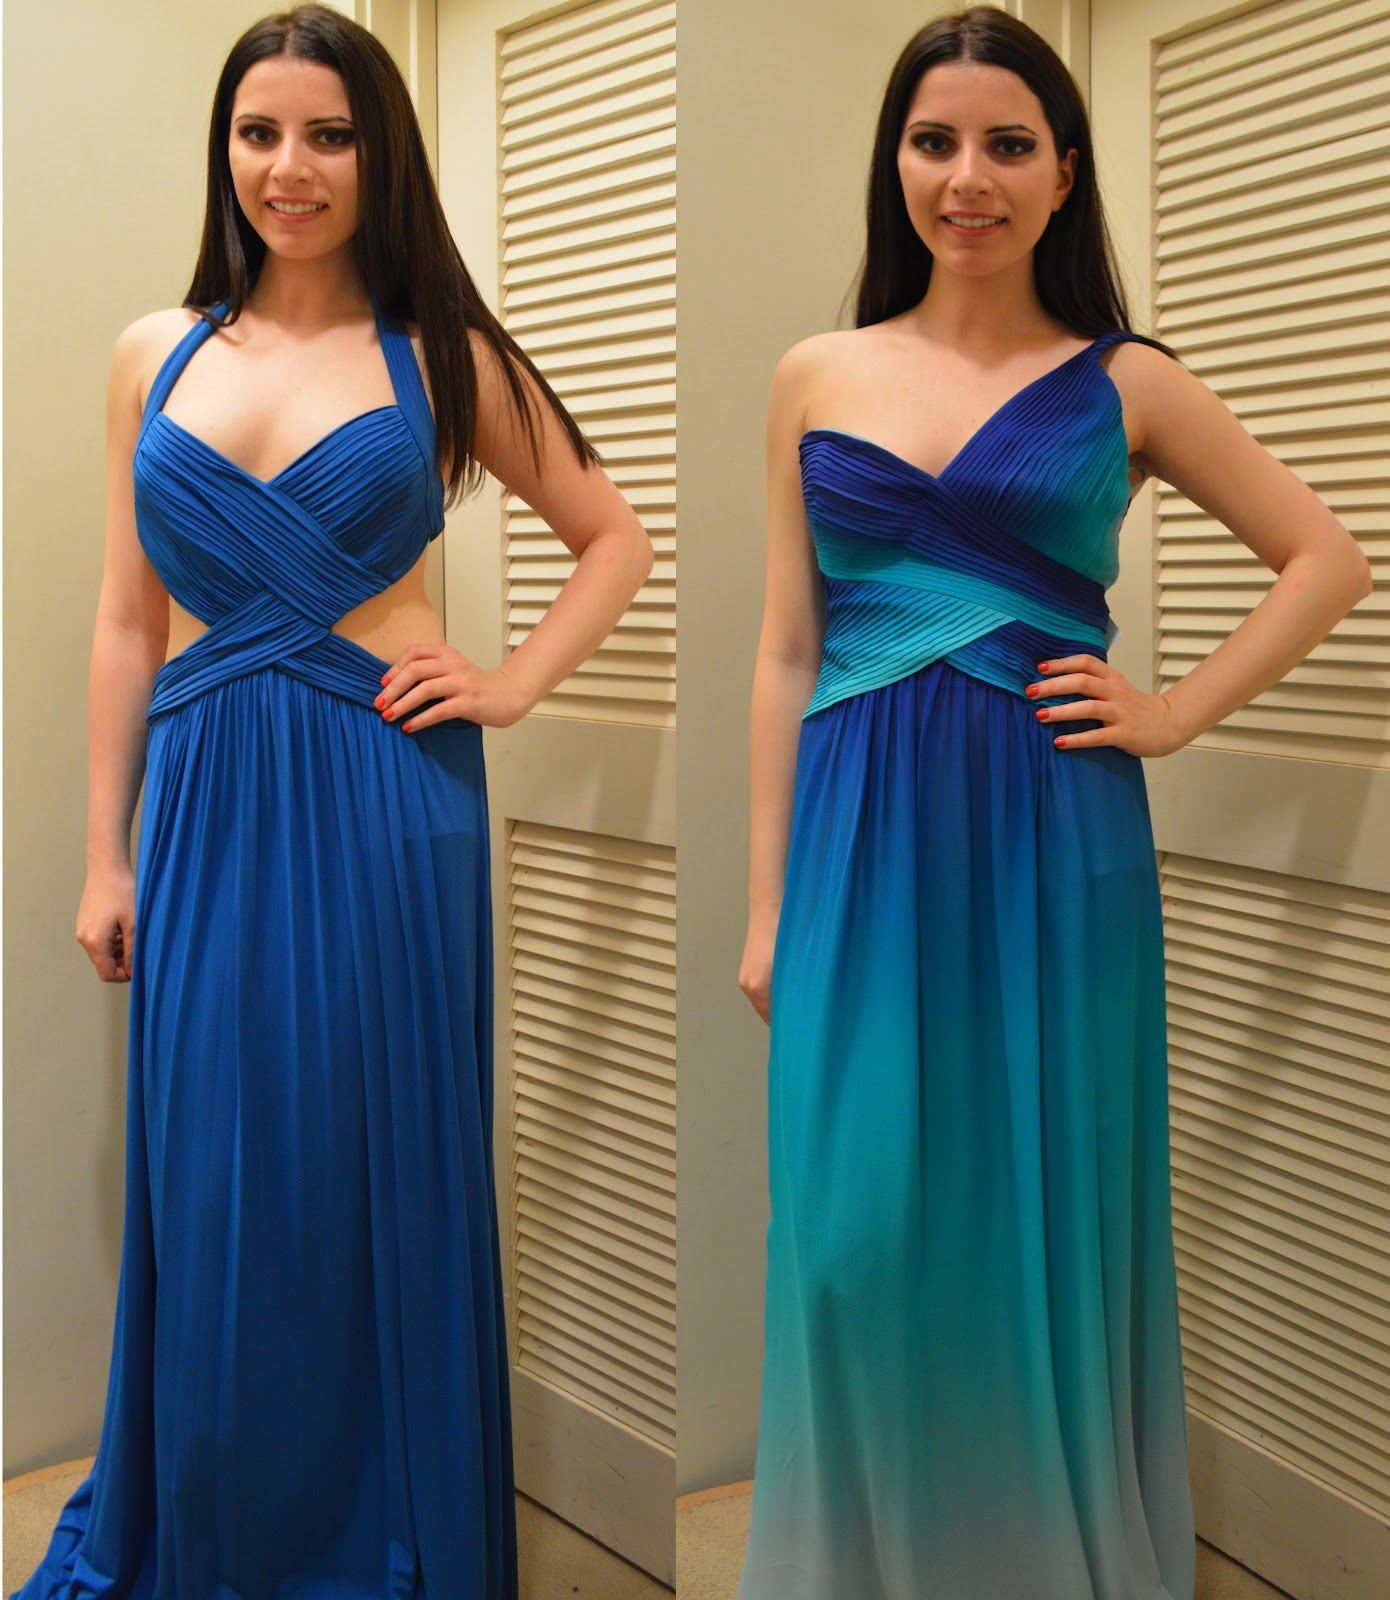 267e70b4cdeb The Style Socialite - A Fashion/Society Blog : Trying On BCBG Gowns ...